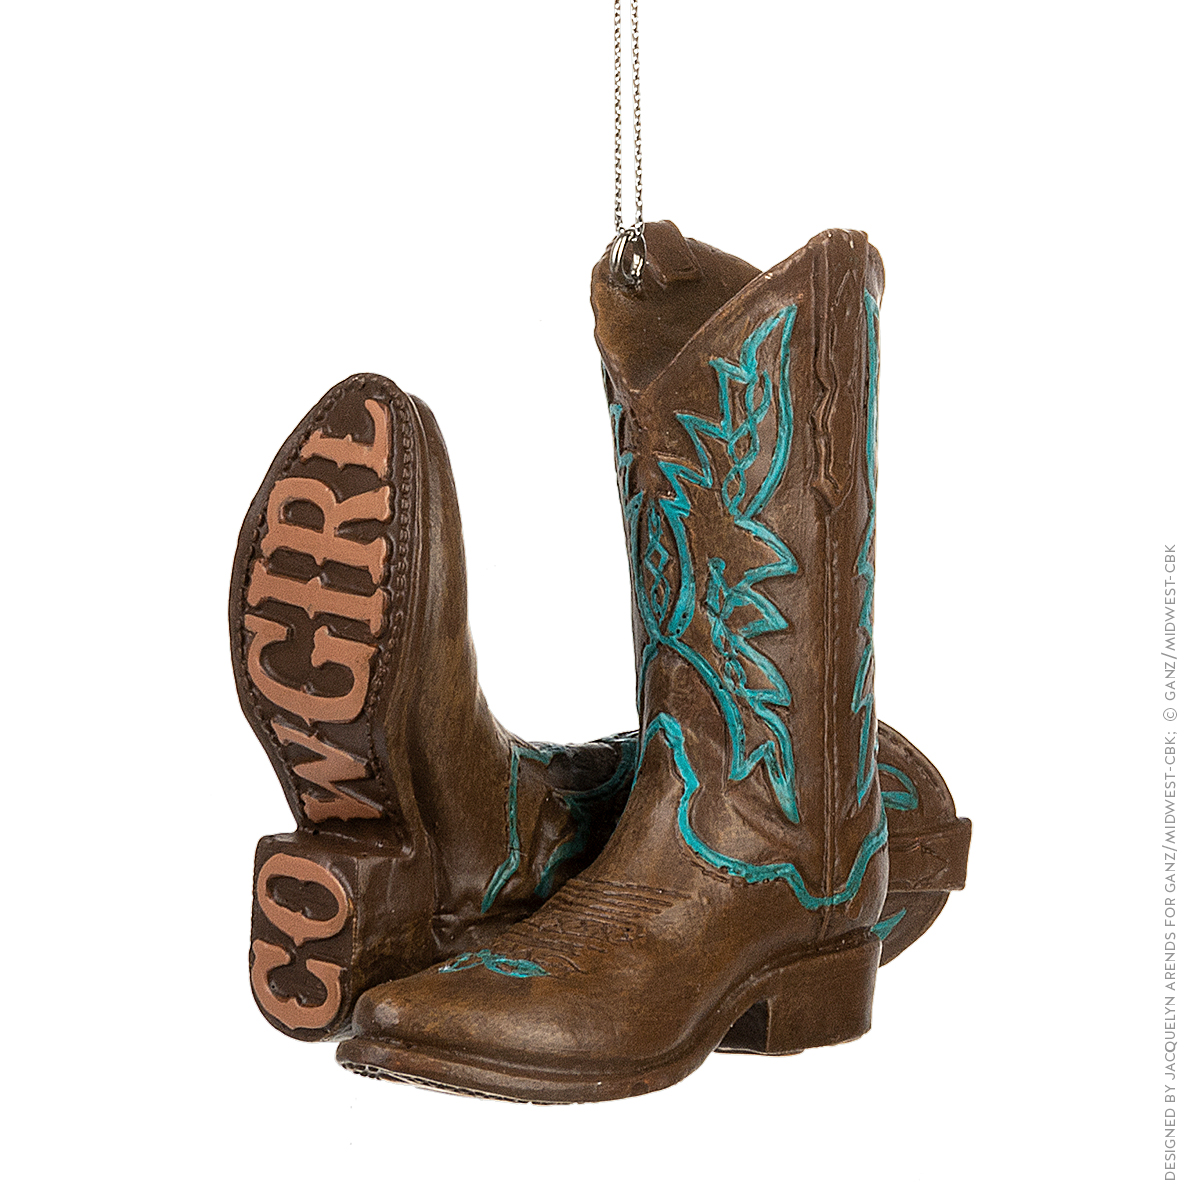 Specialty Ornaments Cowgirl Boots ornament by Jacquelyn Arends; © Ganz/Midwest-CBK 2019